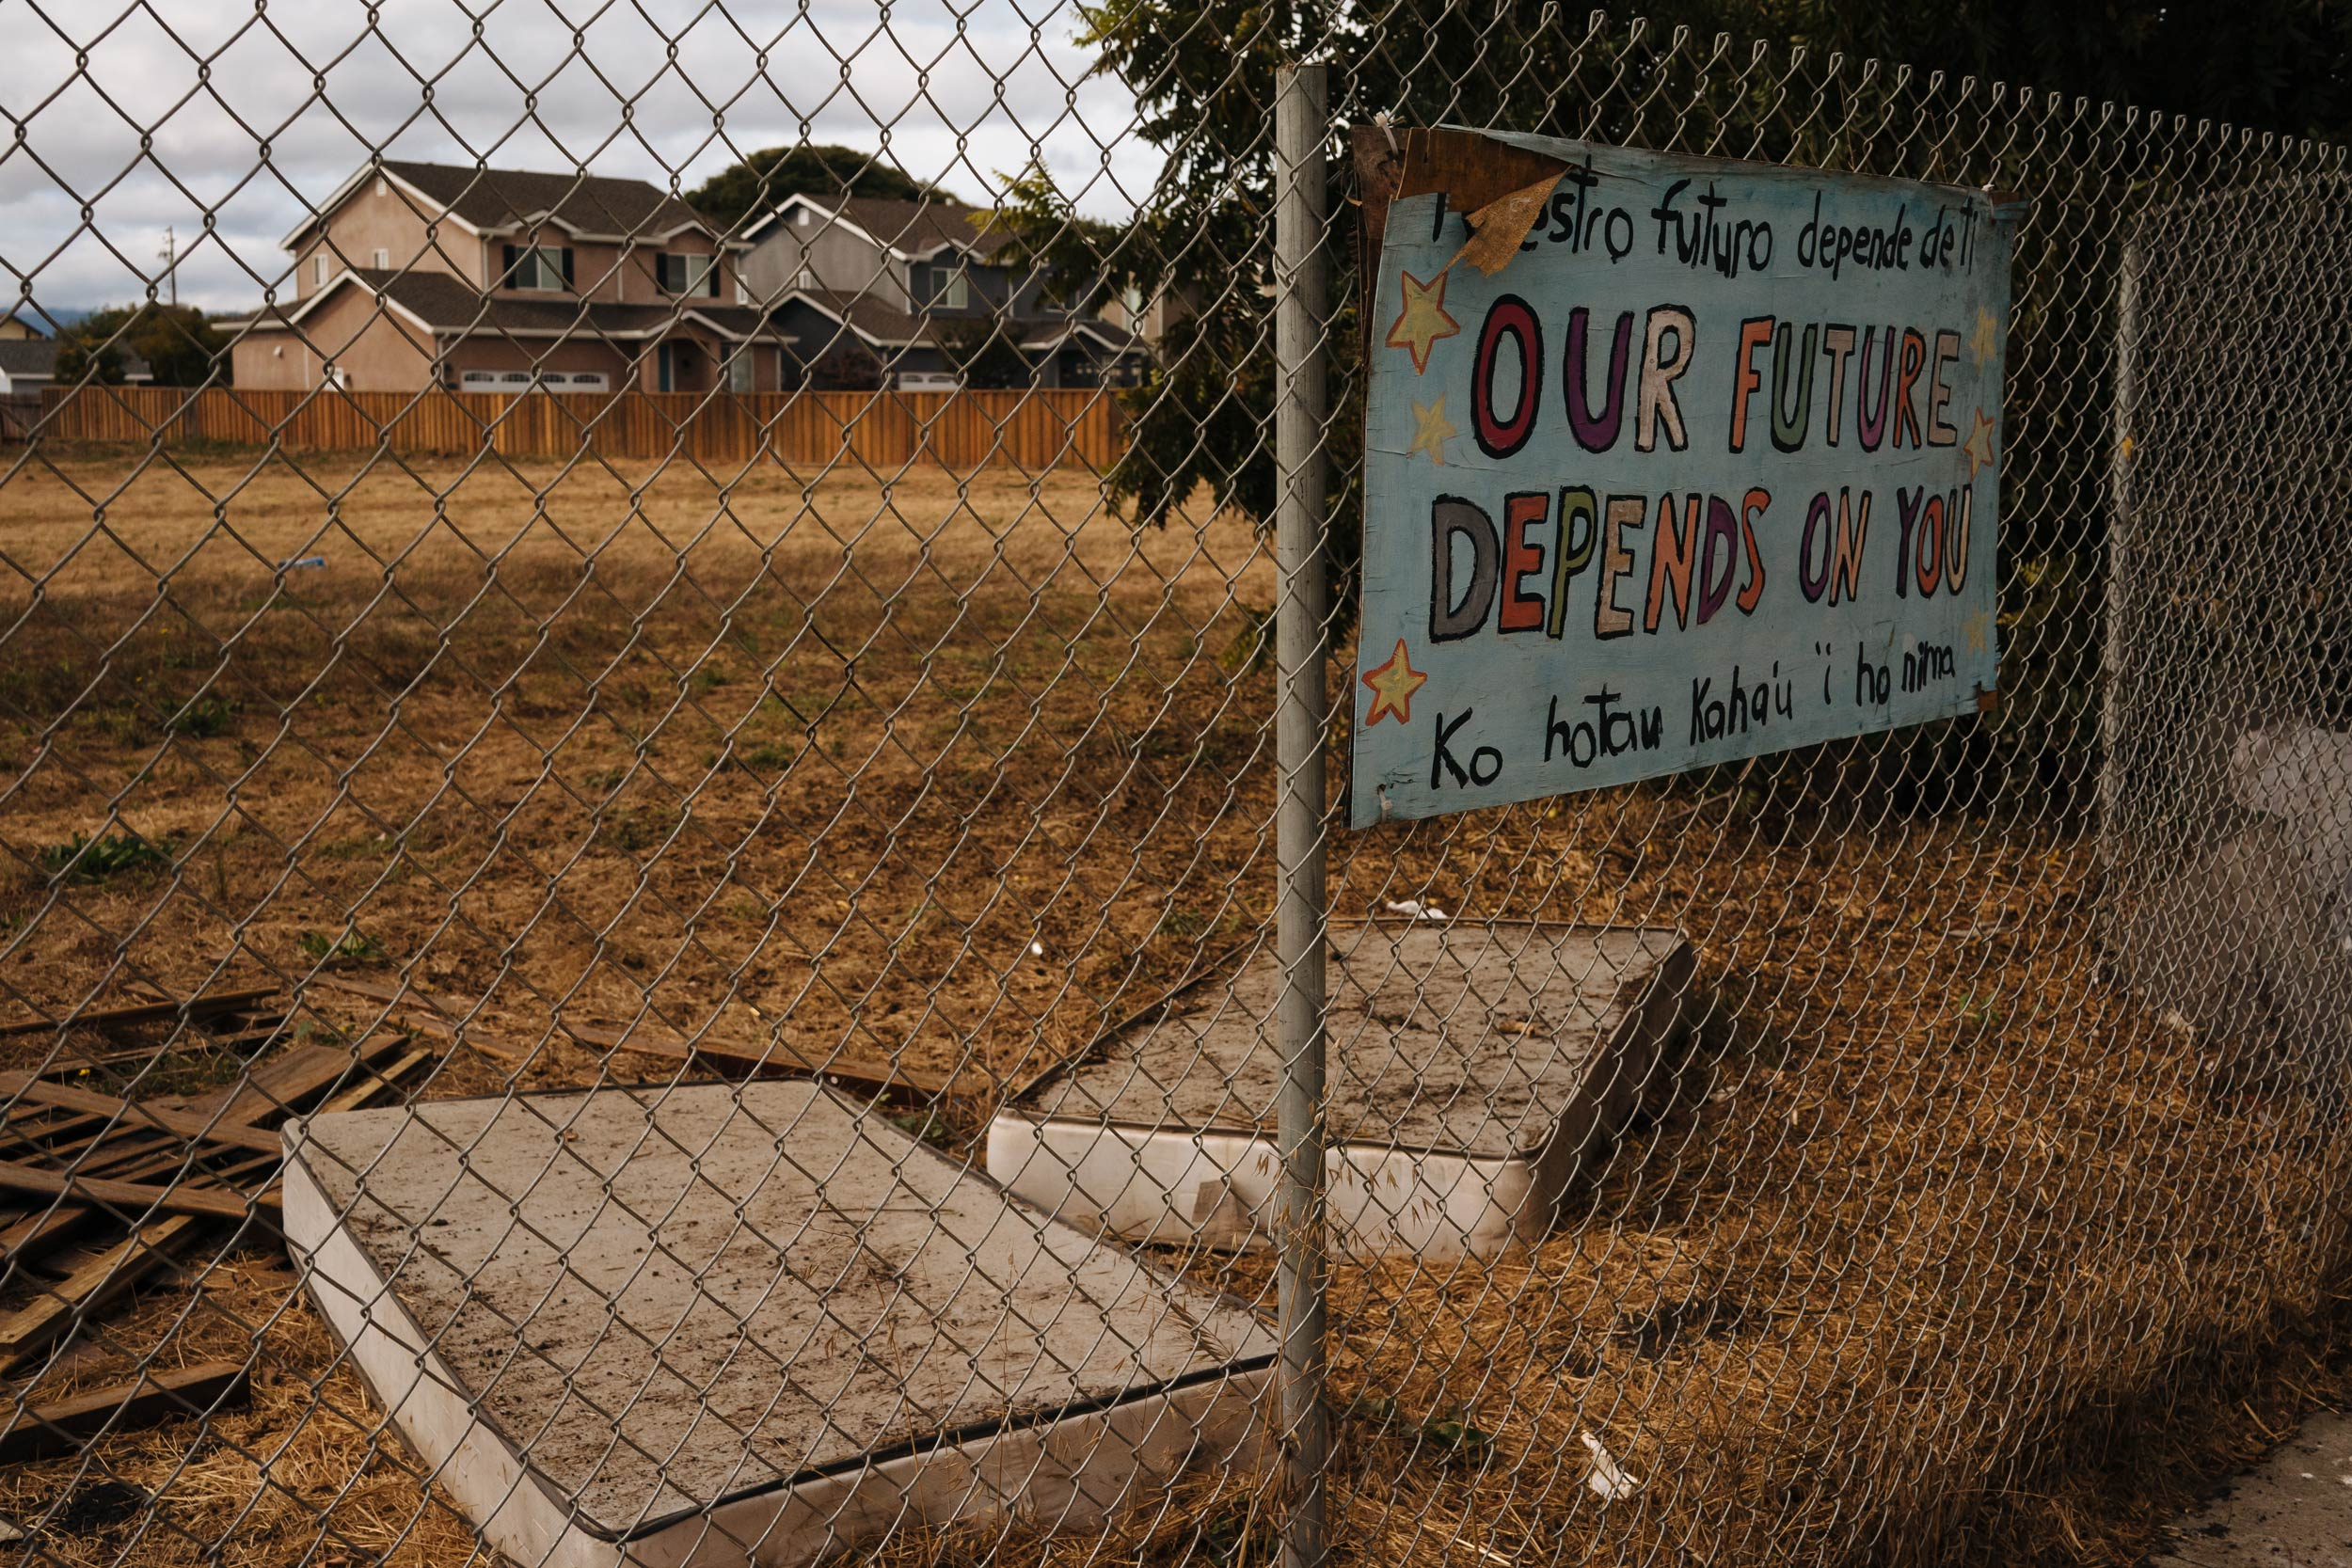 The Washington Post / East Palo Alto